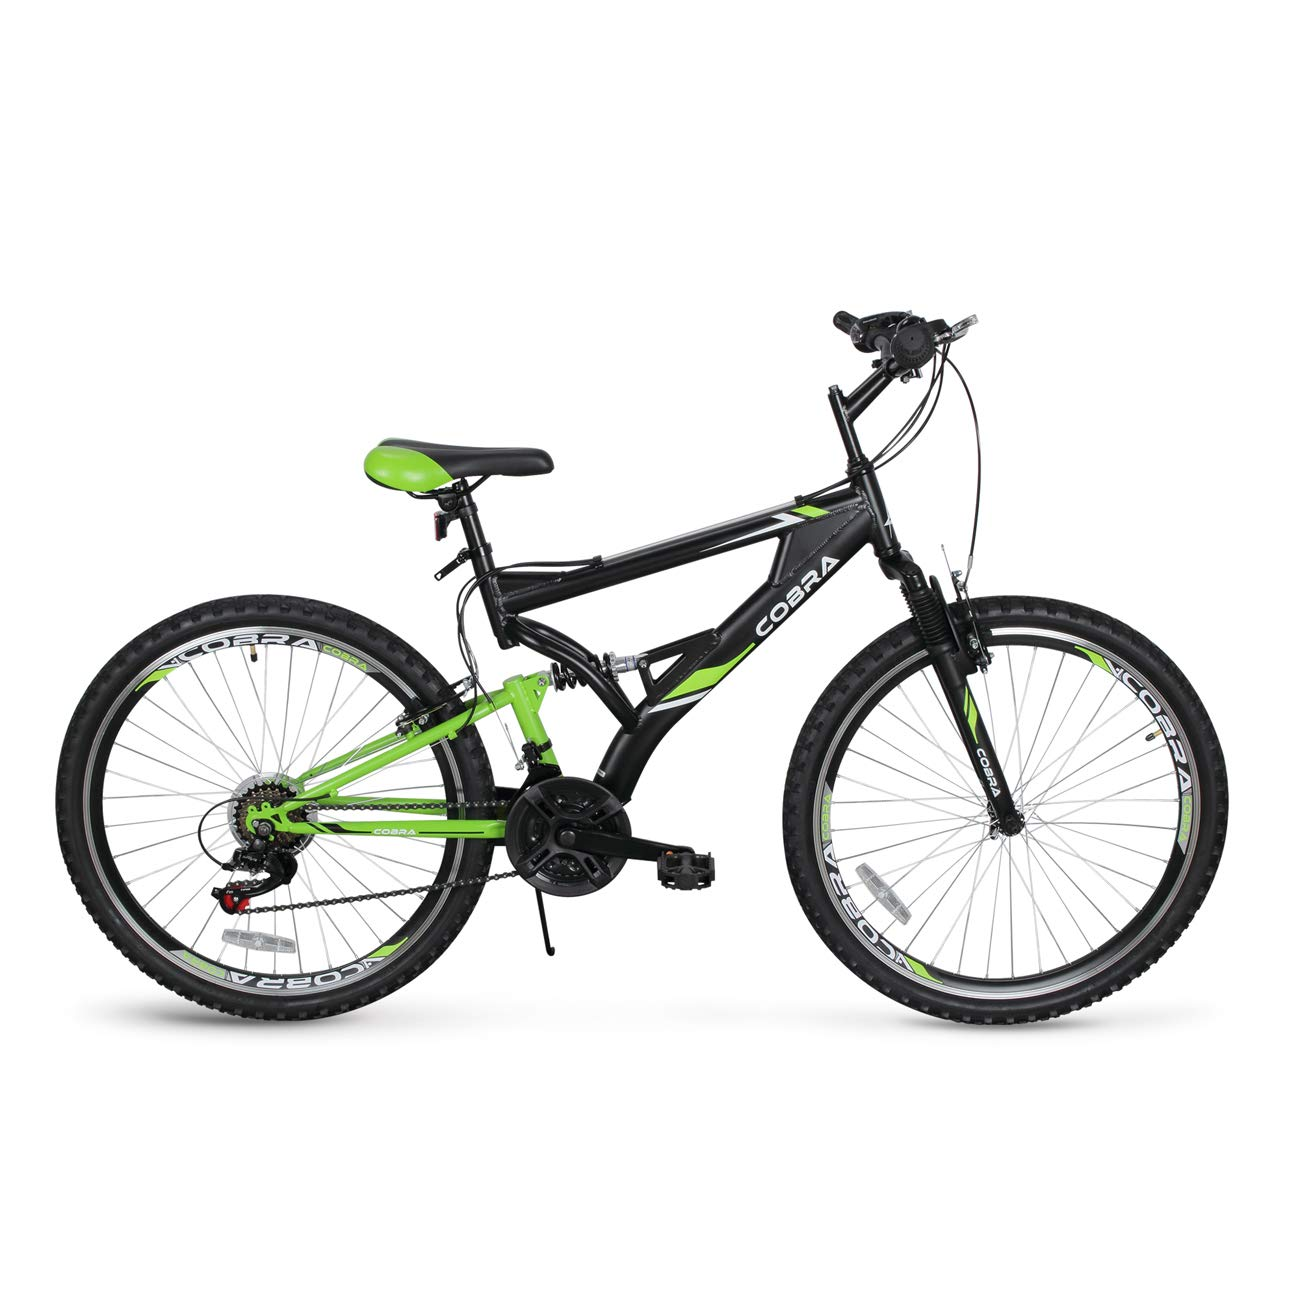 "Akonza Cobra 26"" Mountain Bicycle Full Suspension 21-Speed Compatible Outdoor MTB Bike"